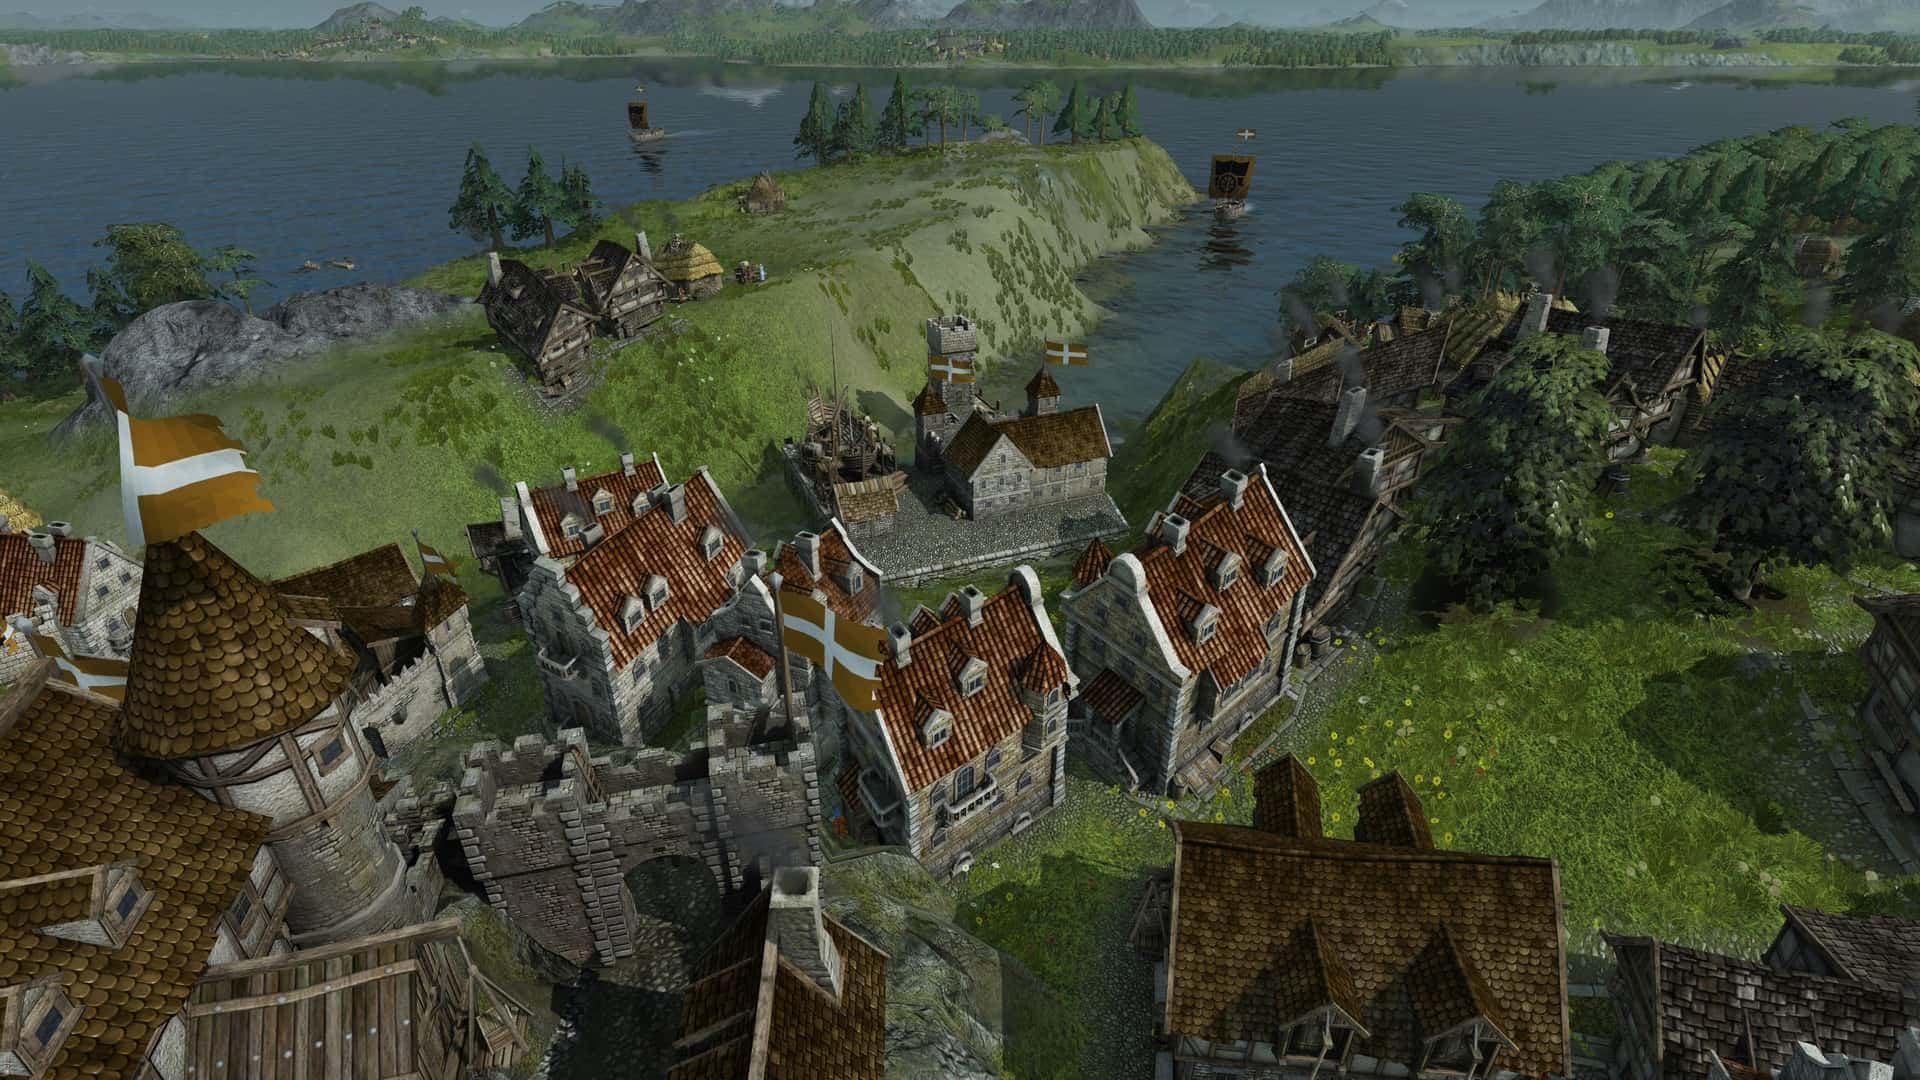 13 Feb 2018 ... Free download. Golden Age is a ... Adds a new era to Age of Empires 2 HD, with  new technologies, new drives and new buildings. Two new...